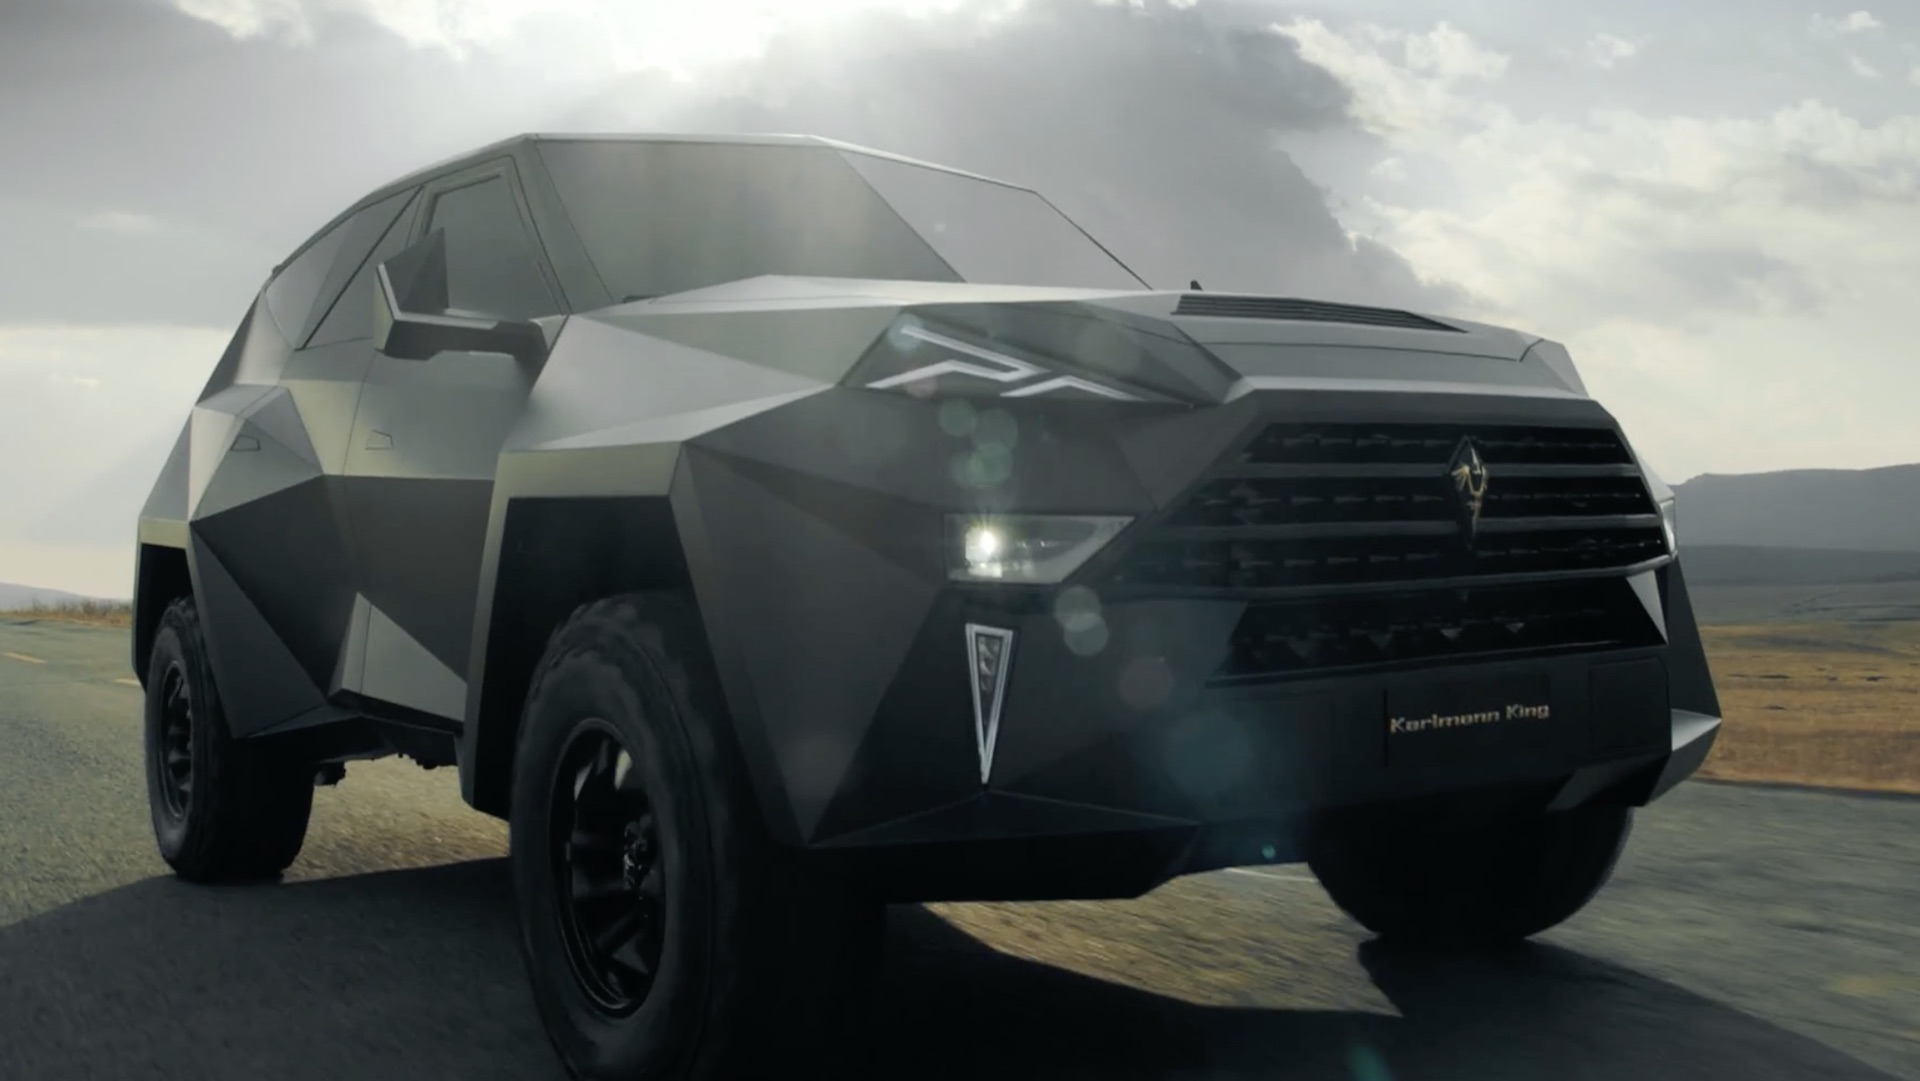 Karlmann King The World S Most Expensive Suv